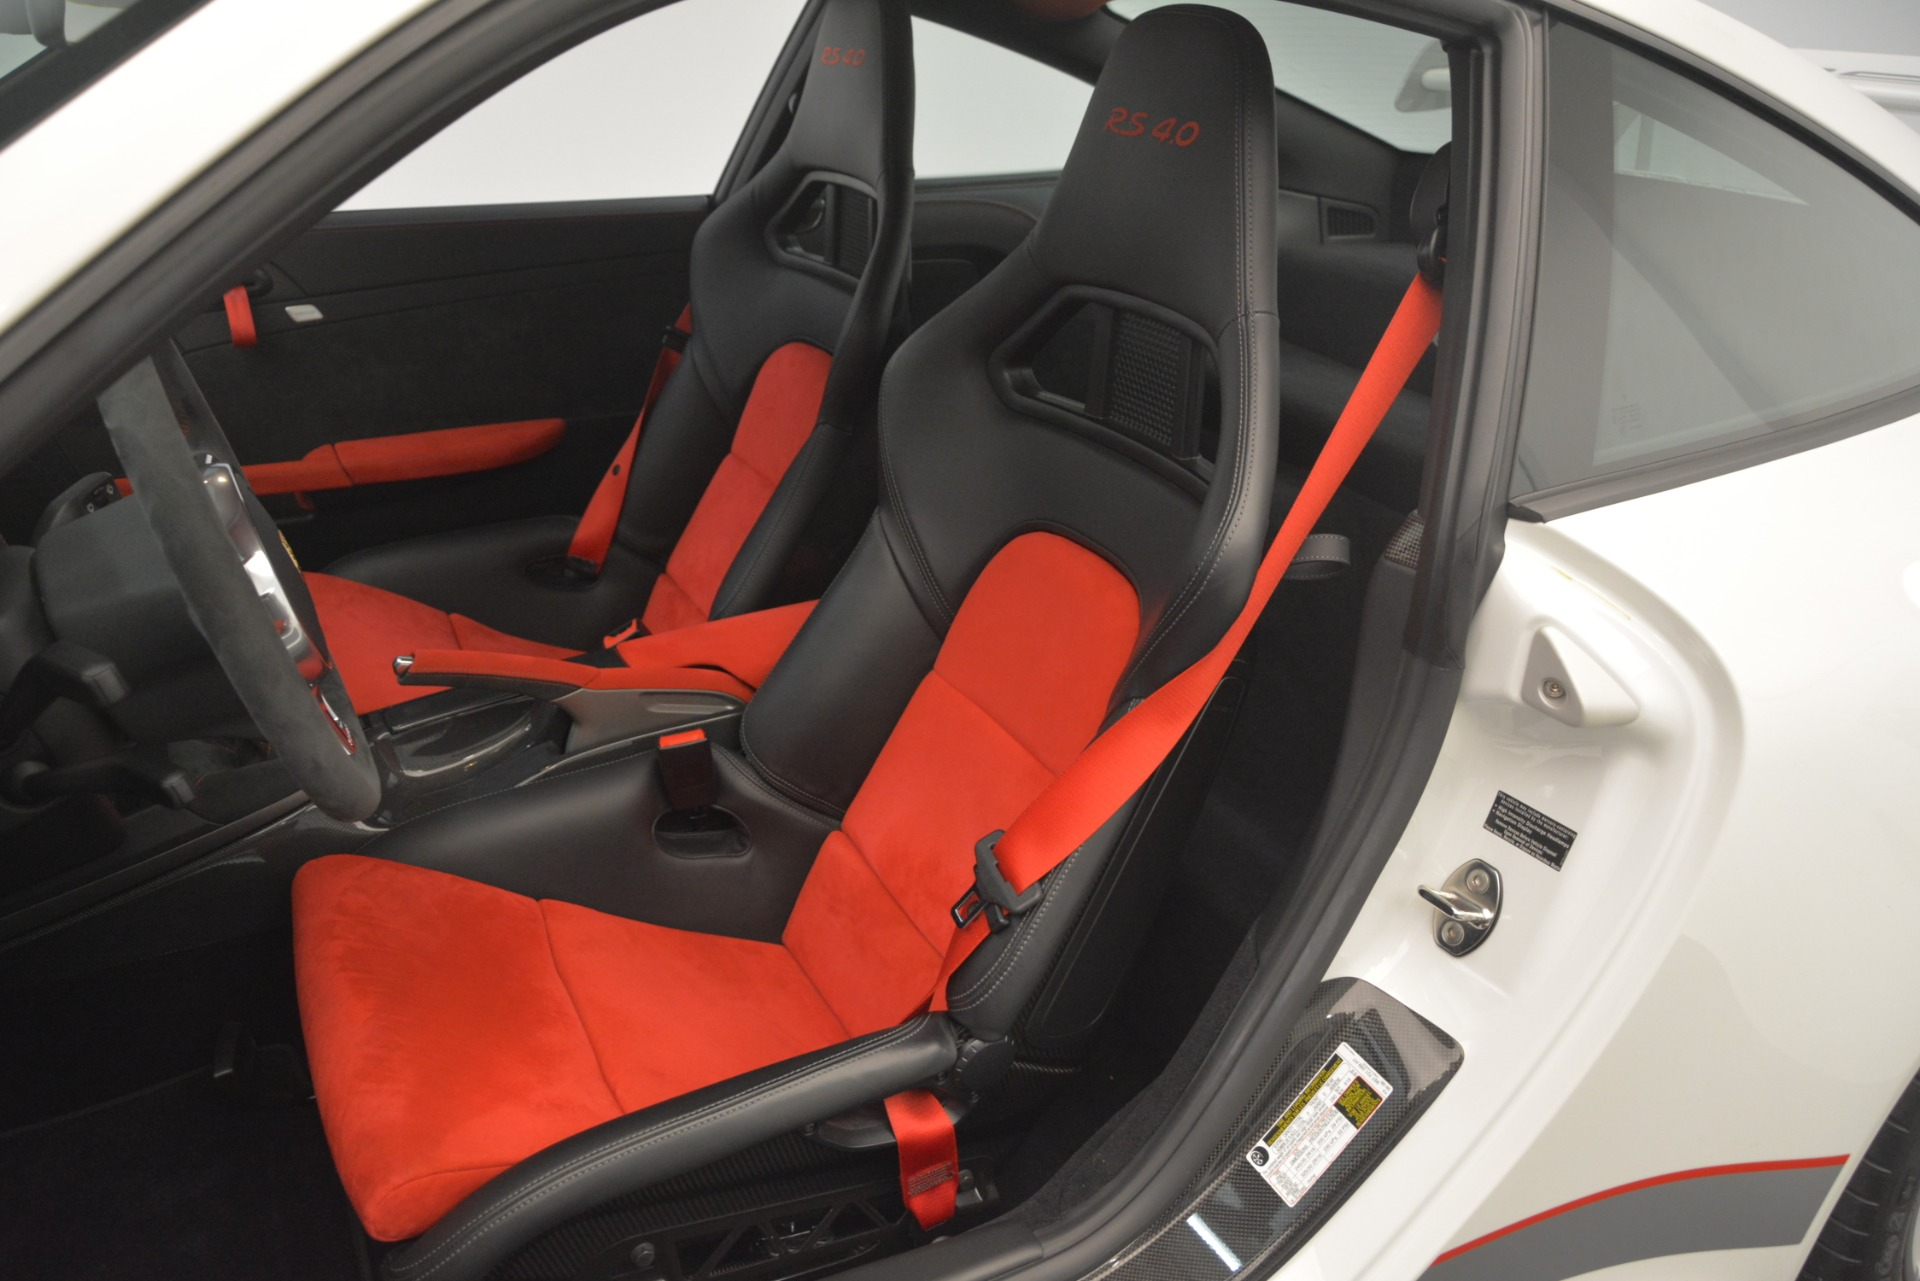 Used 2011 Porsche 911 GT3 RS 4.0 For Sale In Greenwich, CT 3188_p15